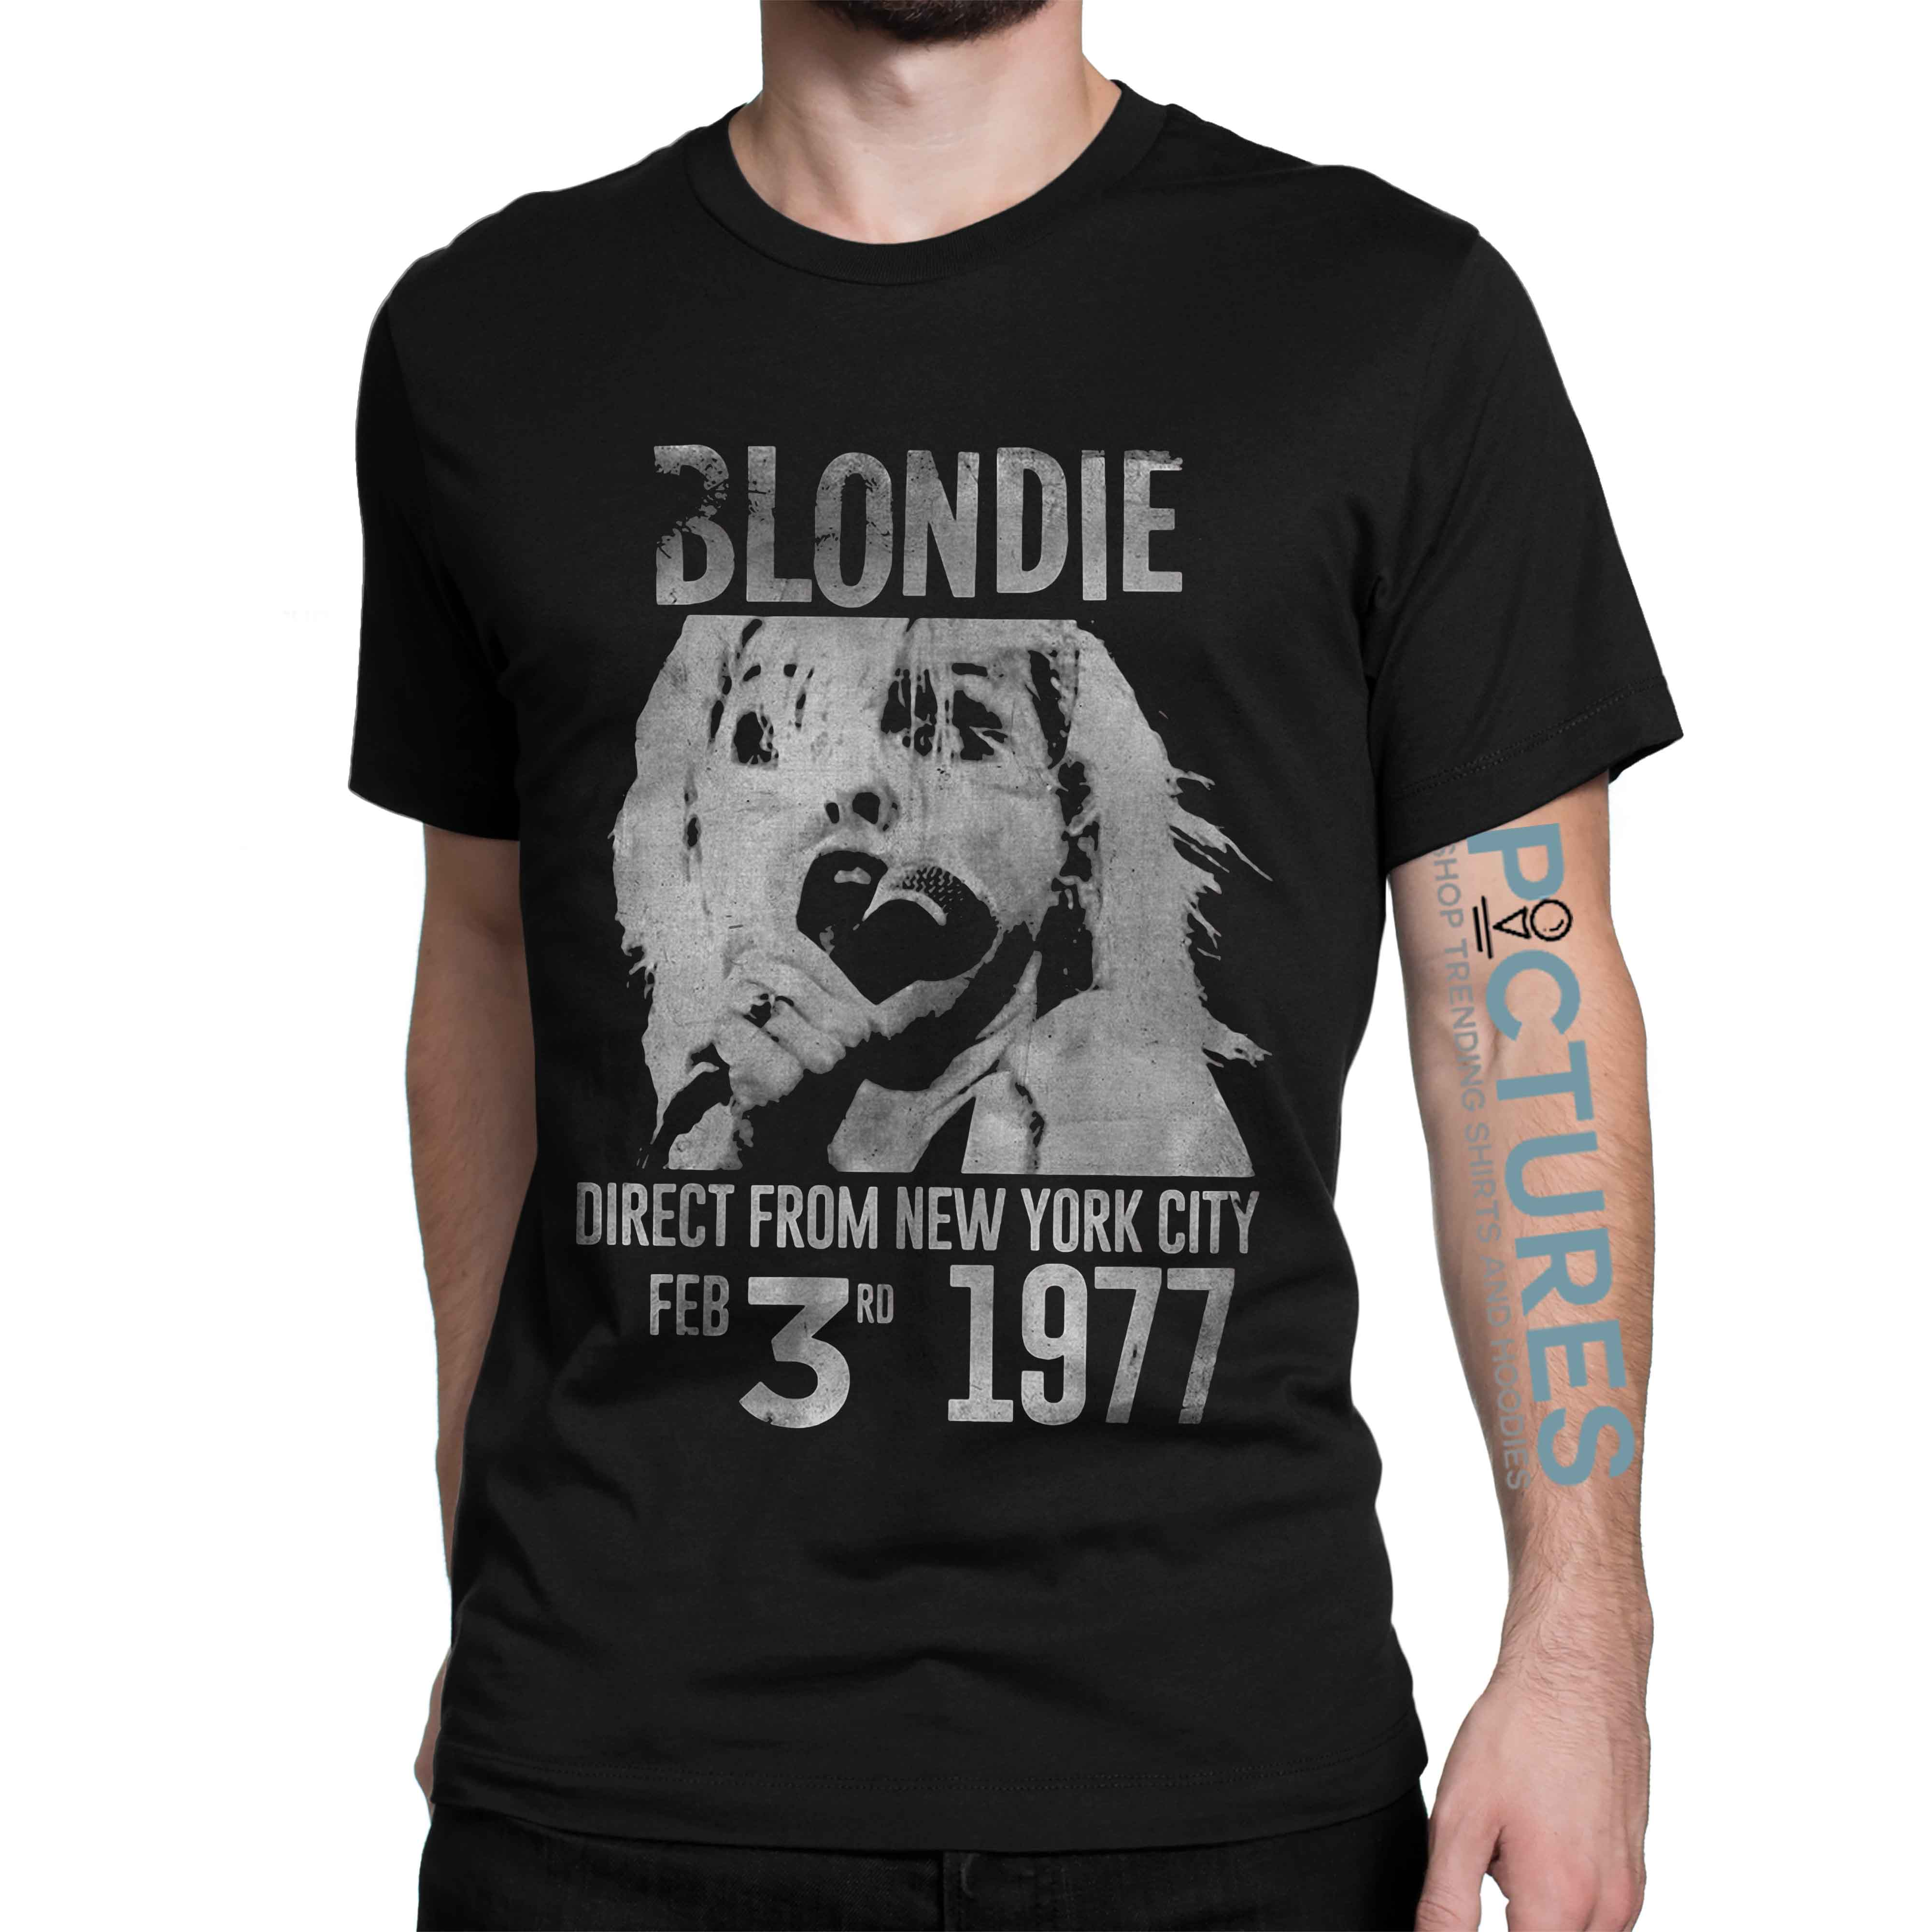 Blondie direct from city Feb 3rd 1977 shirt